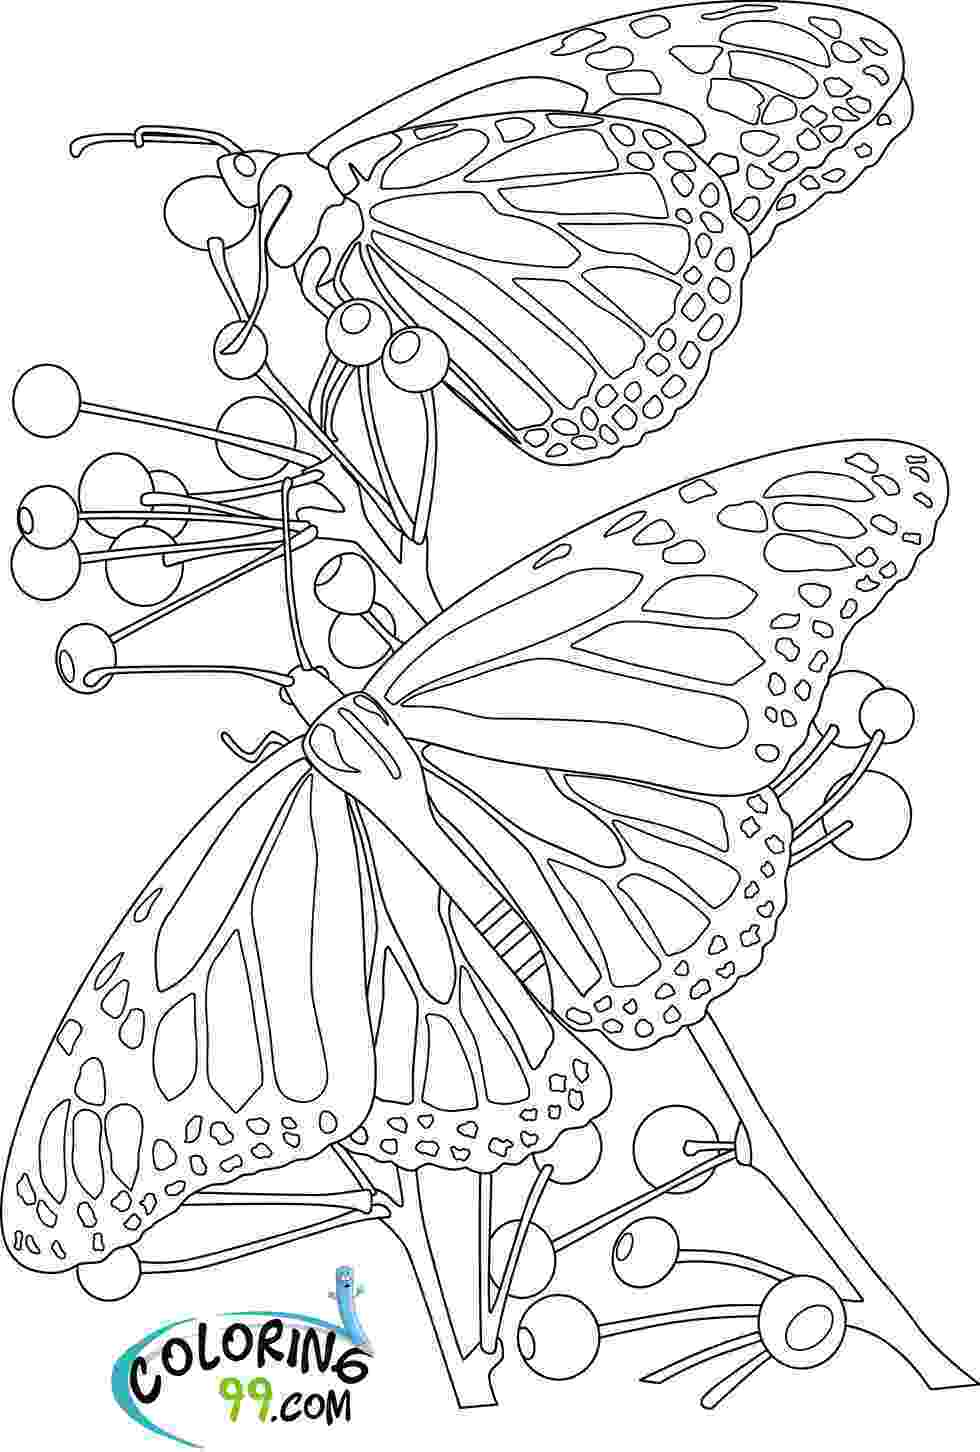 coloring pages for adults butterflies 78 best images about printable grayscale coloring pages on adults butterflies coloring pages for